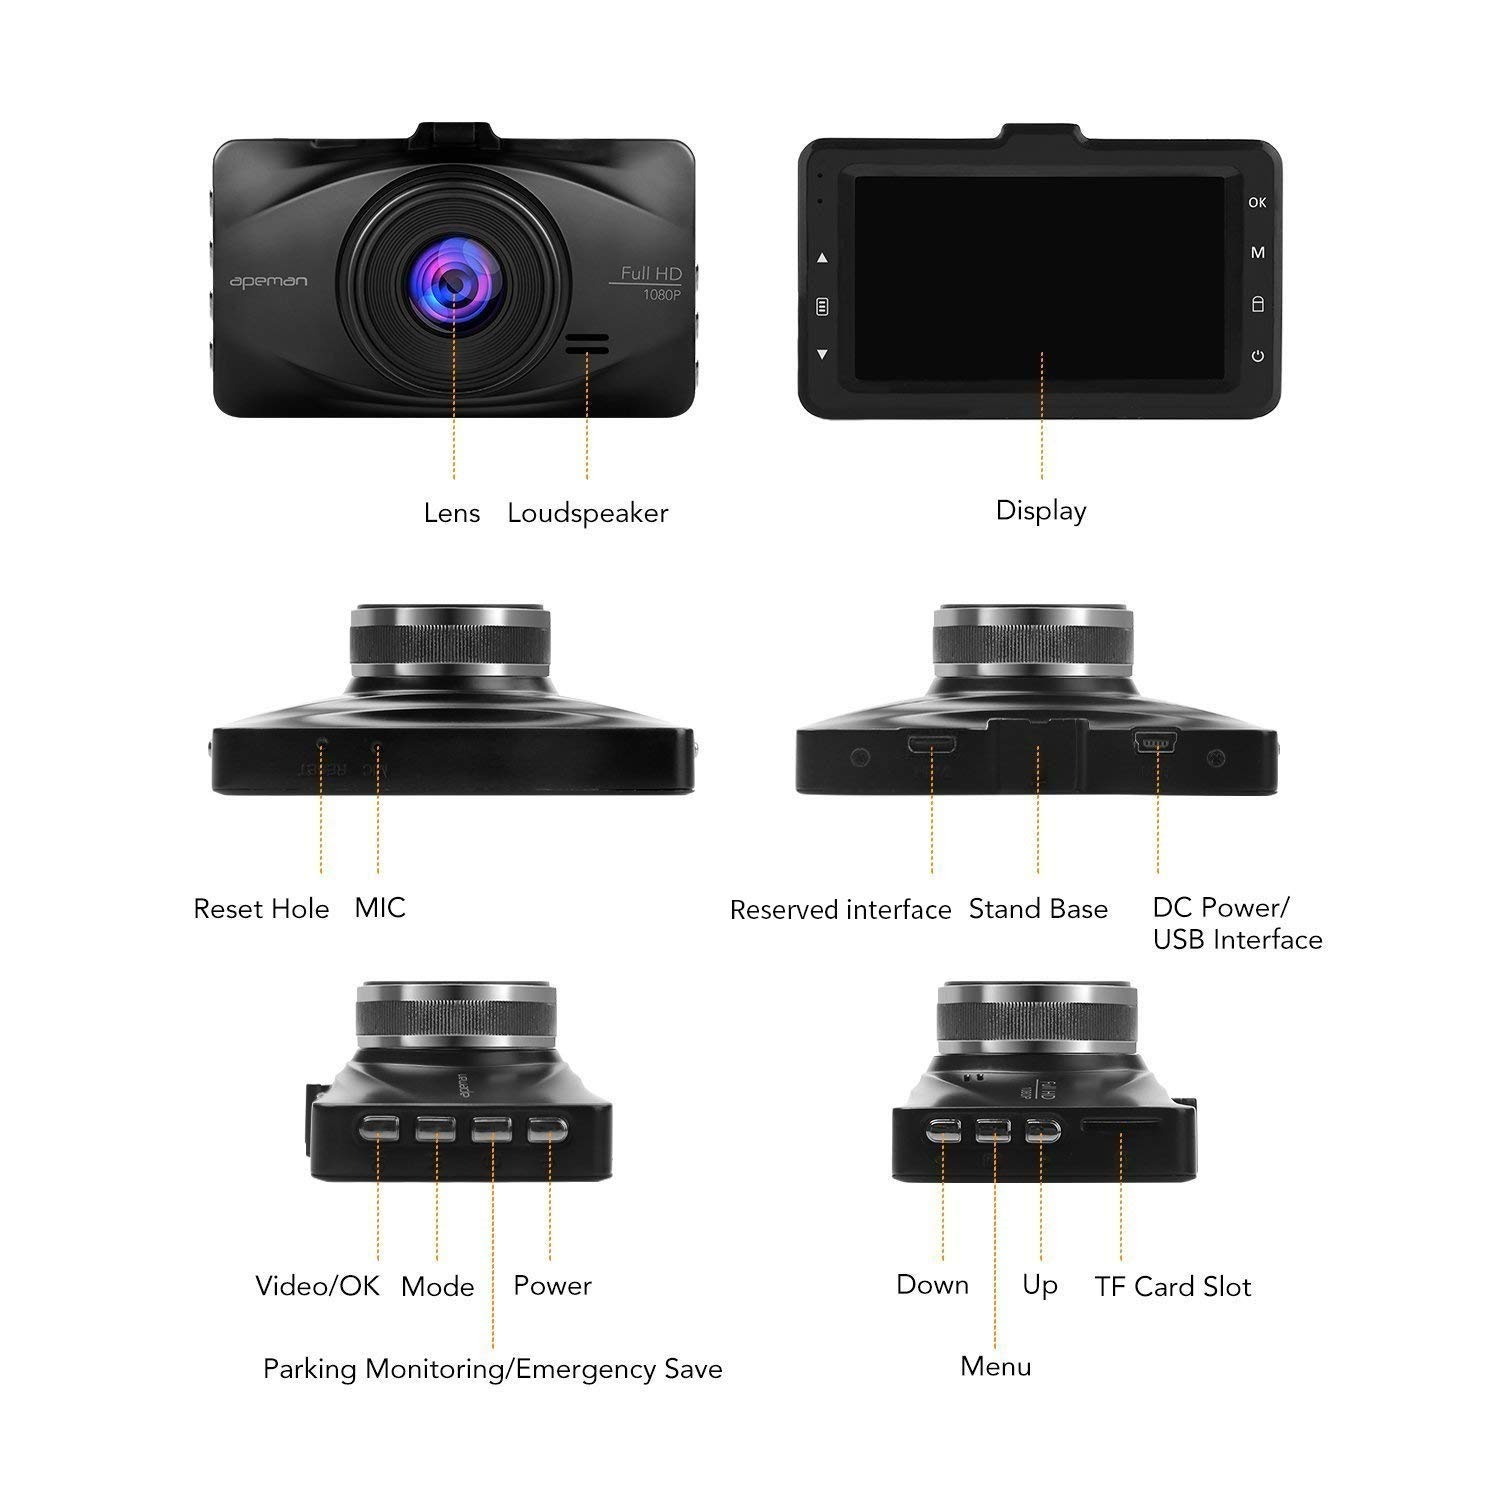 APEMAN Dash Cam FHD 1080P 3.0 inch LCD Screen Dashboard Camera Car Driving Recorder with 170 Degree Wide Angle,WDR,G-Sensor,Loop Recording,Motion Detection C570